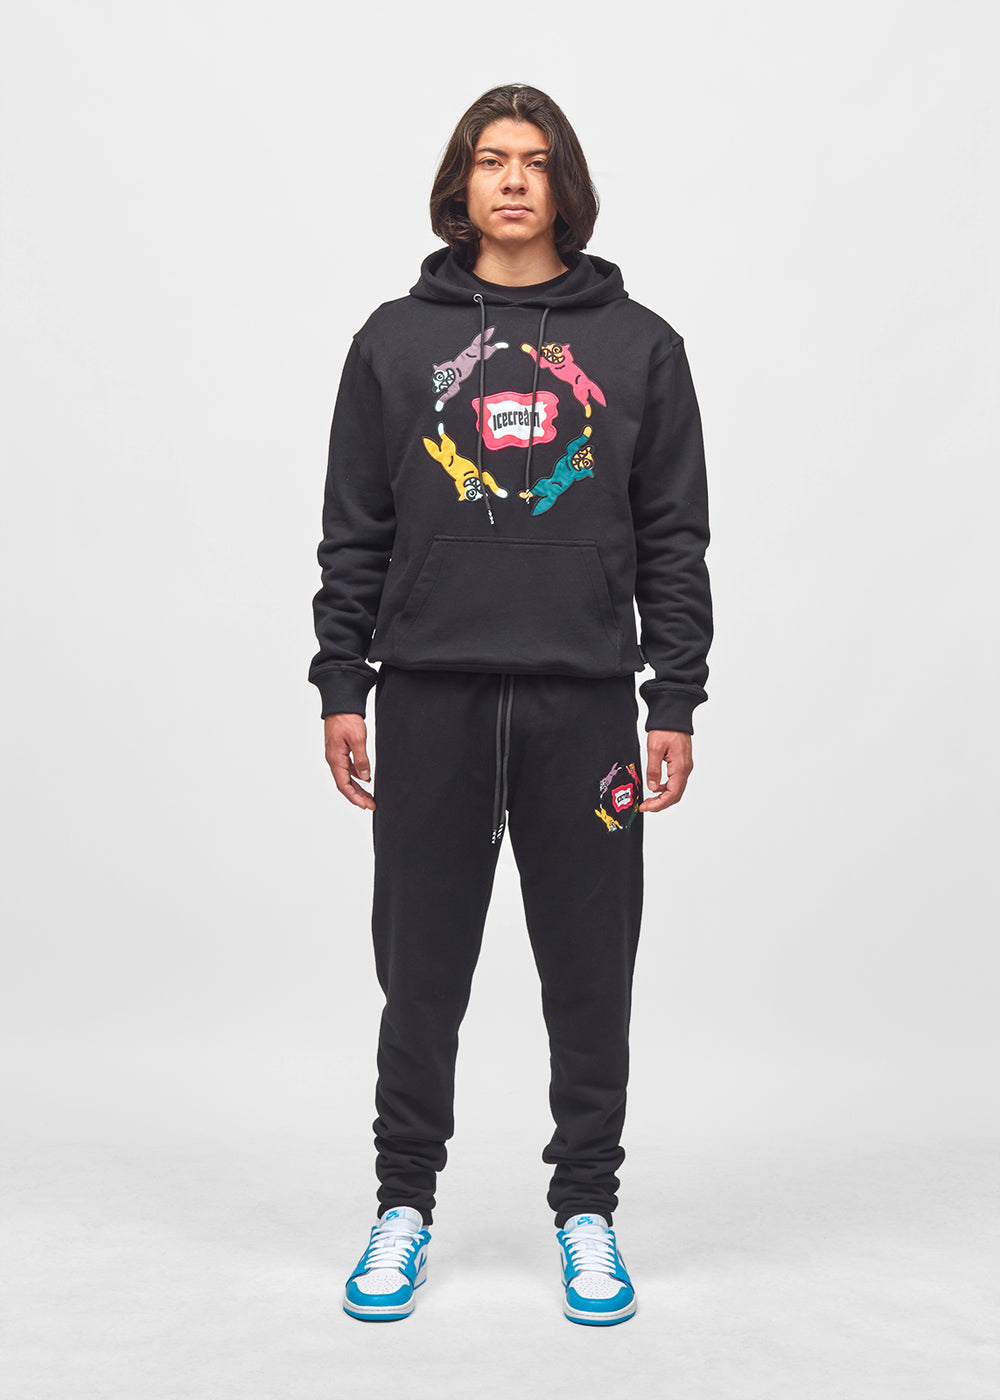 chase-hoodie-491-6308-blk-2